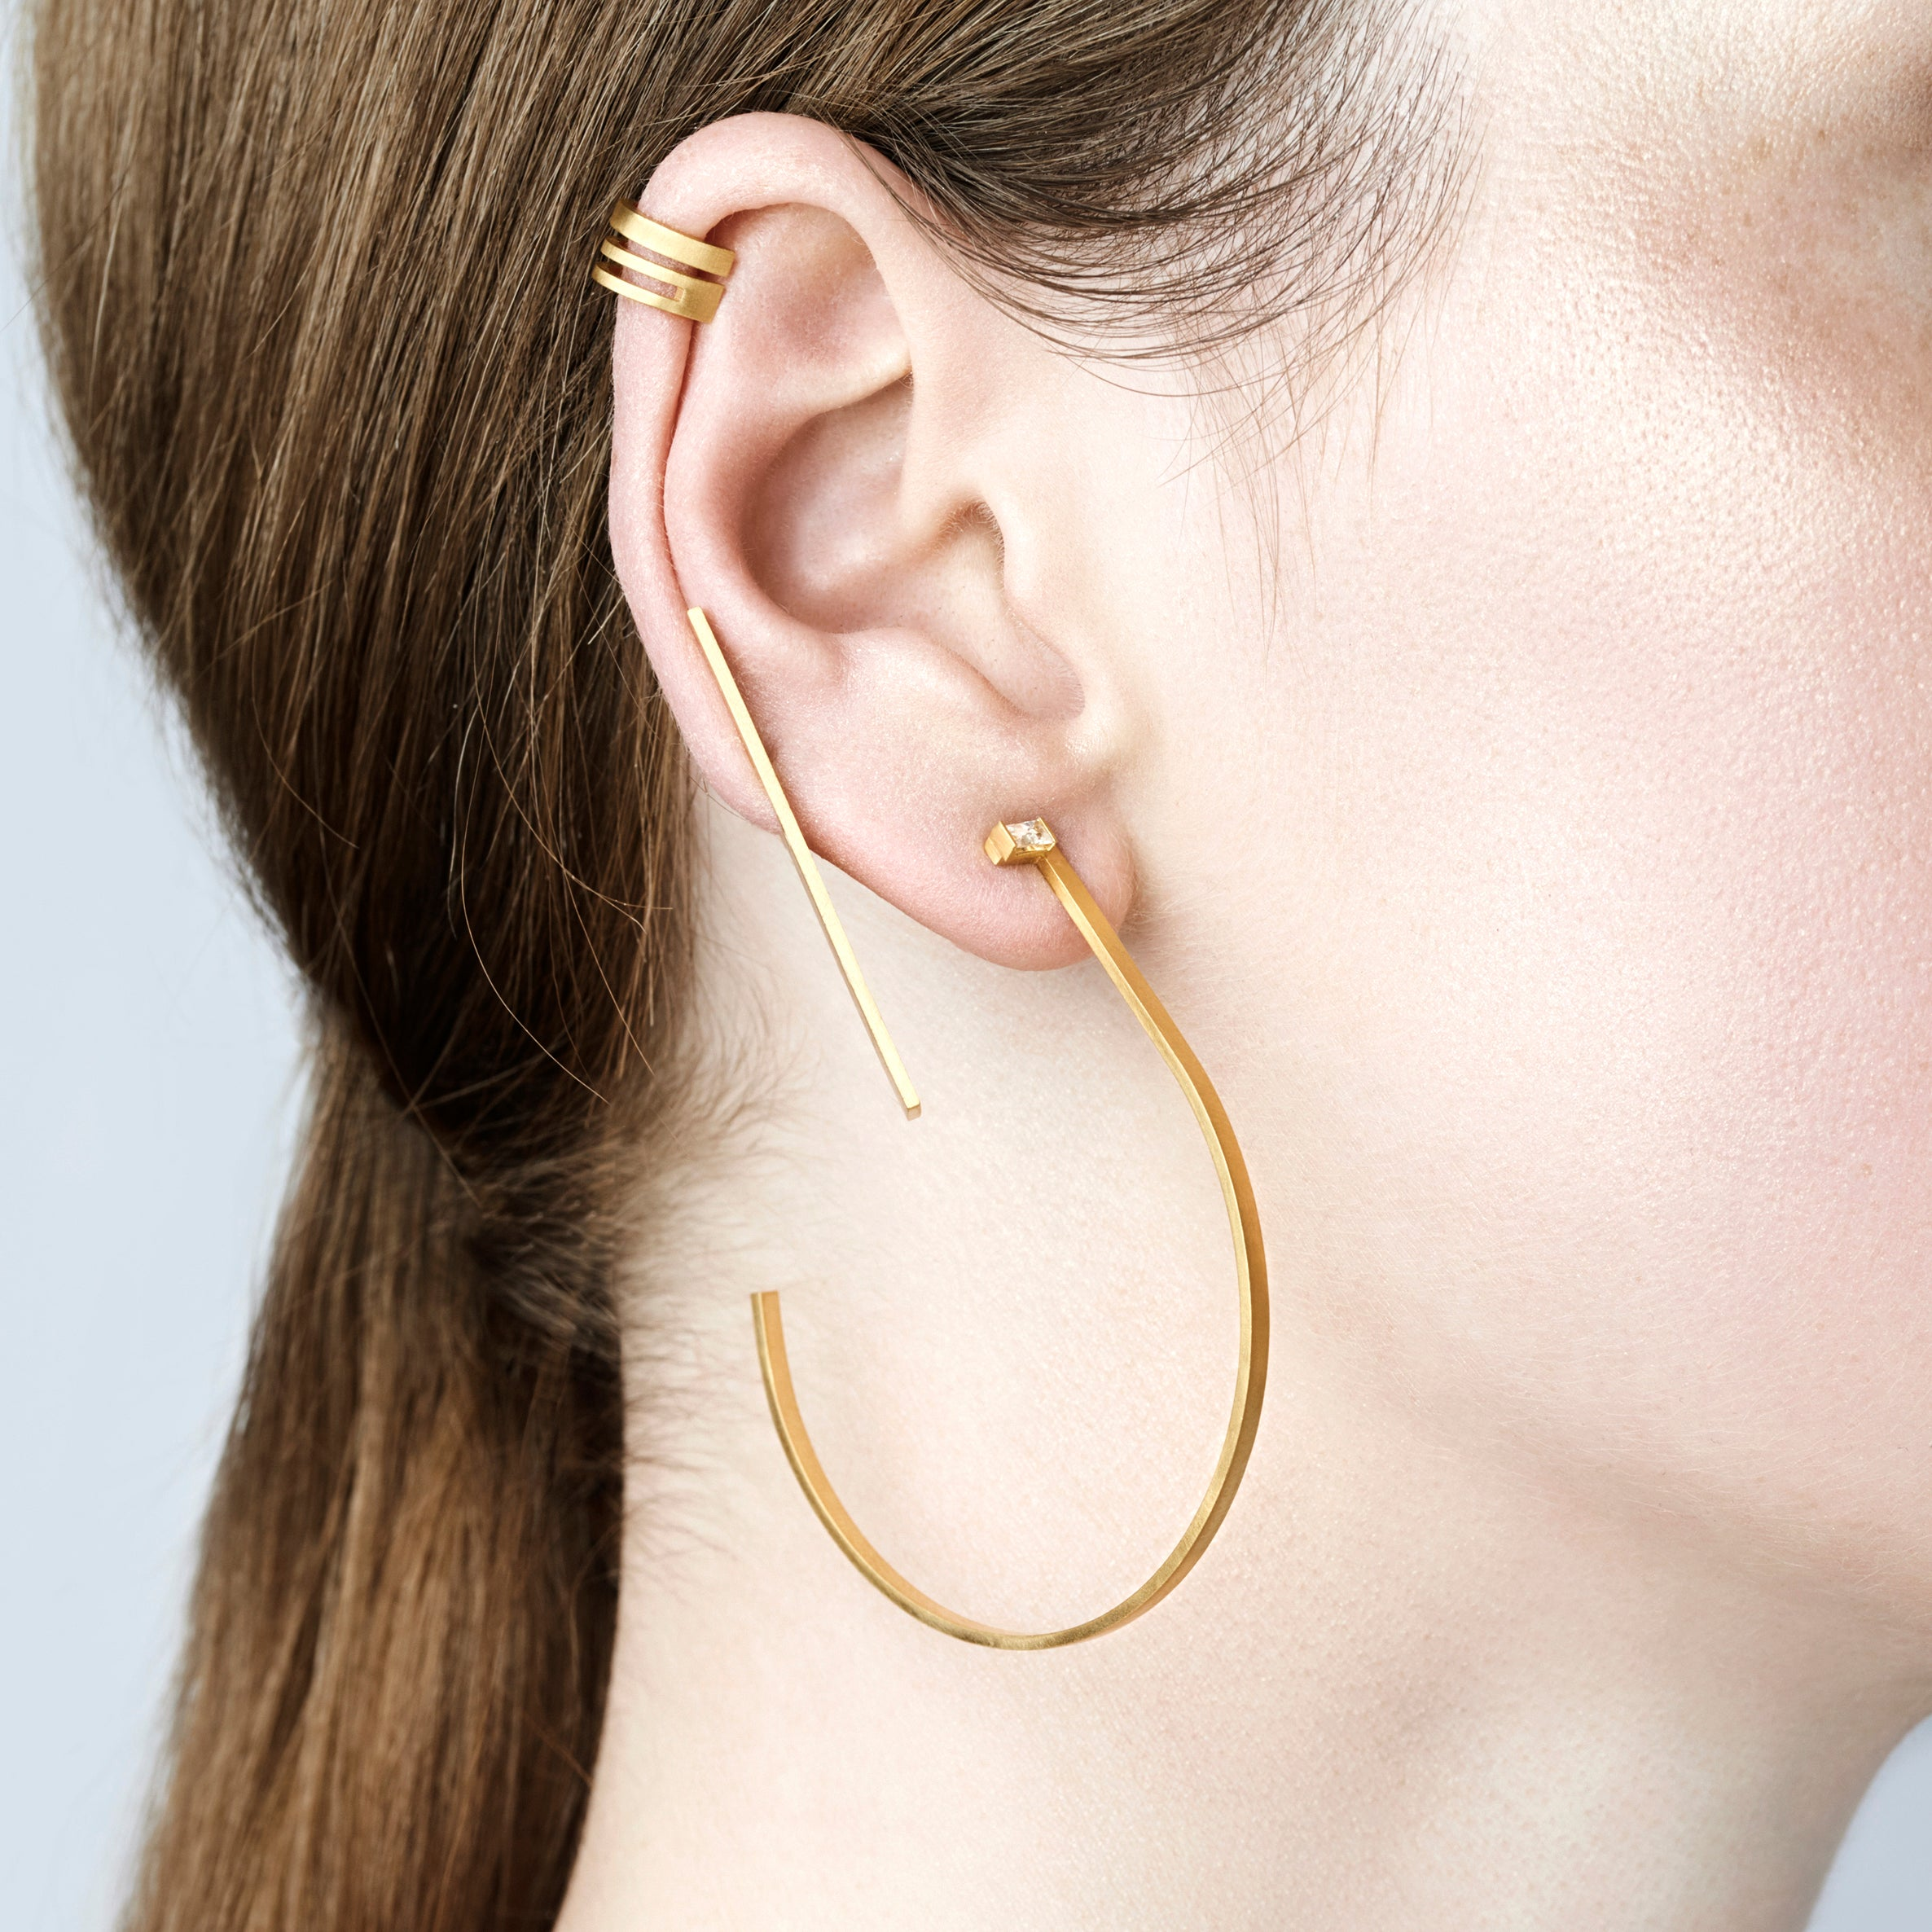 Unfinishing Line Triple Line Silver Ear Cuff